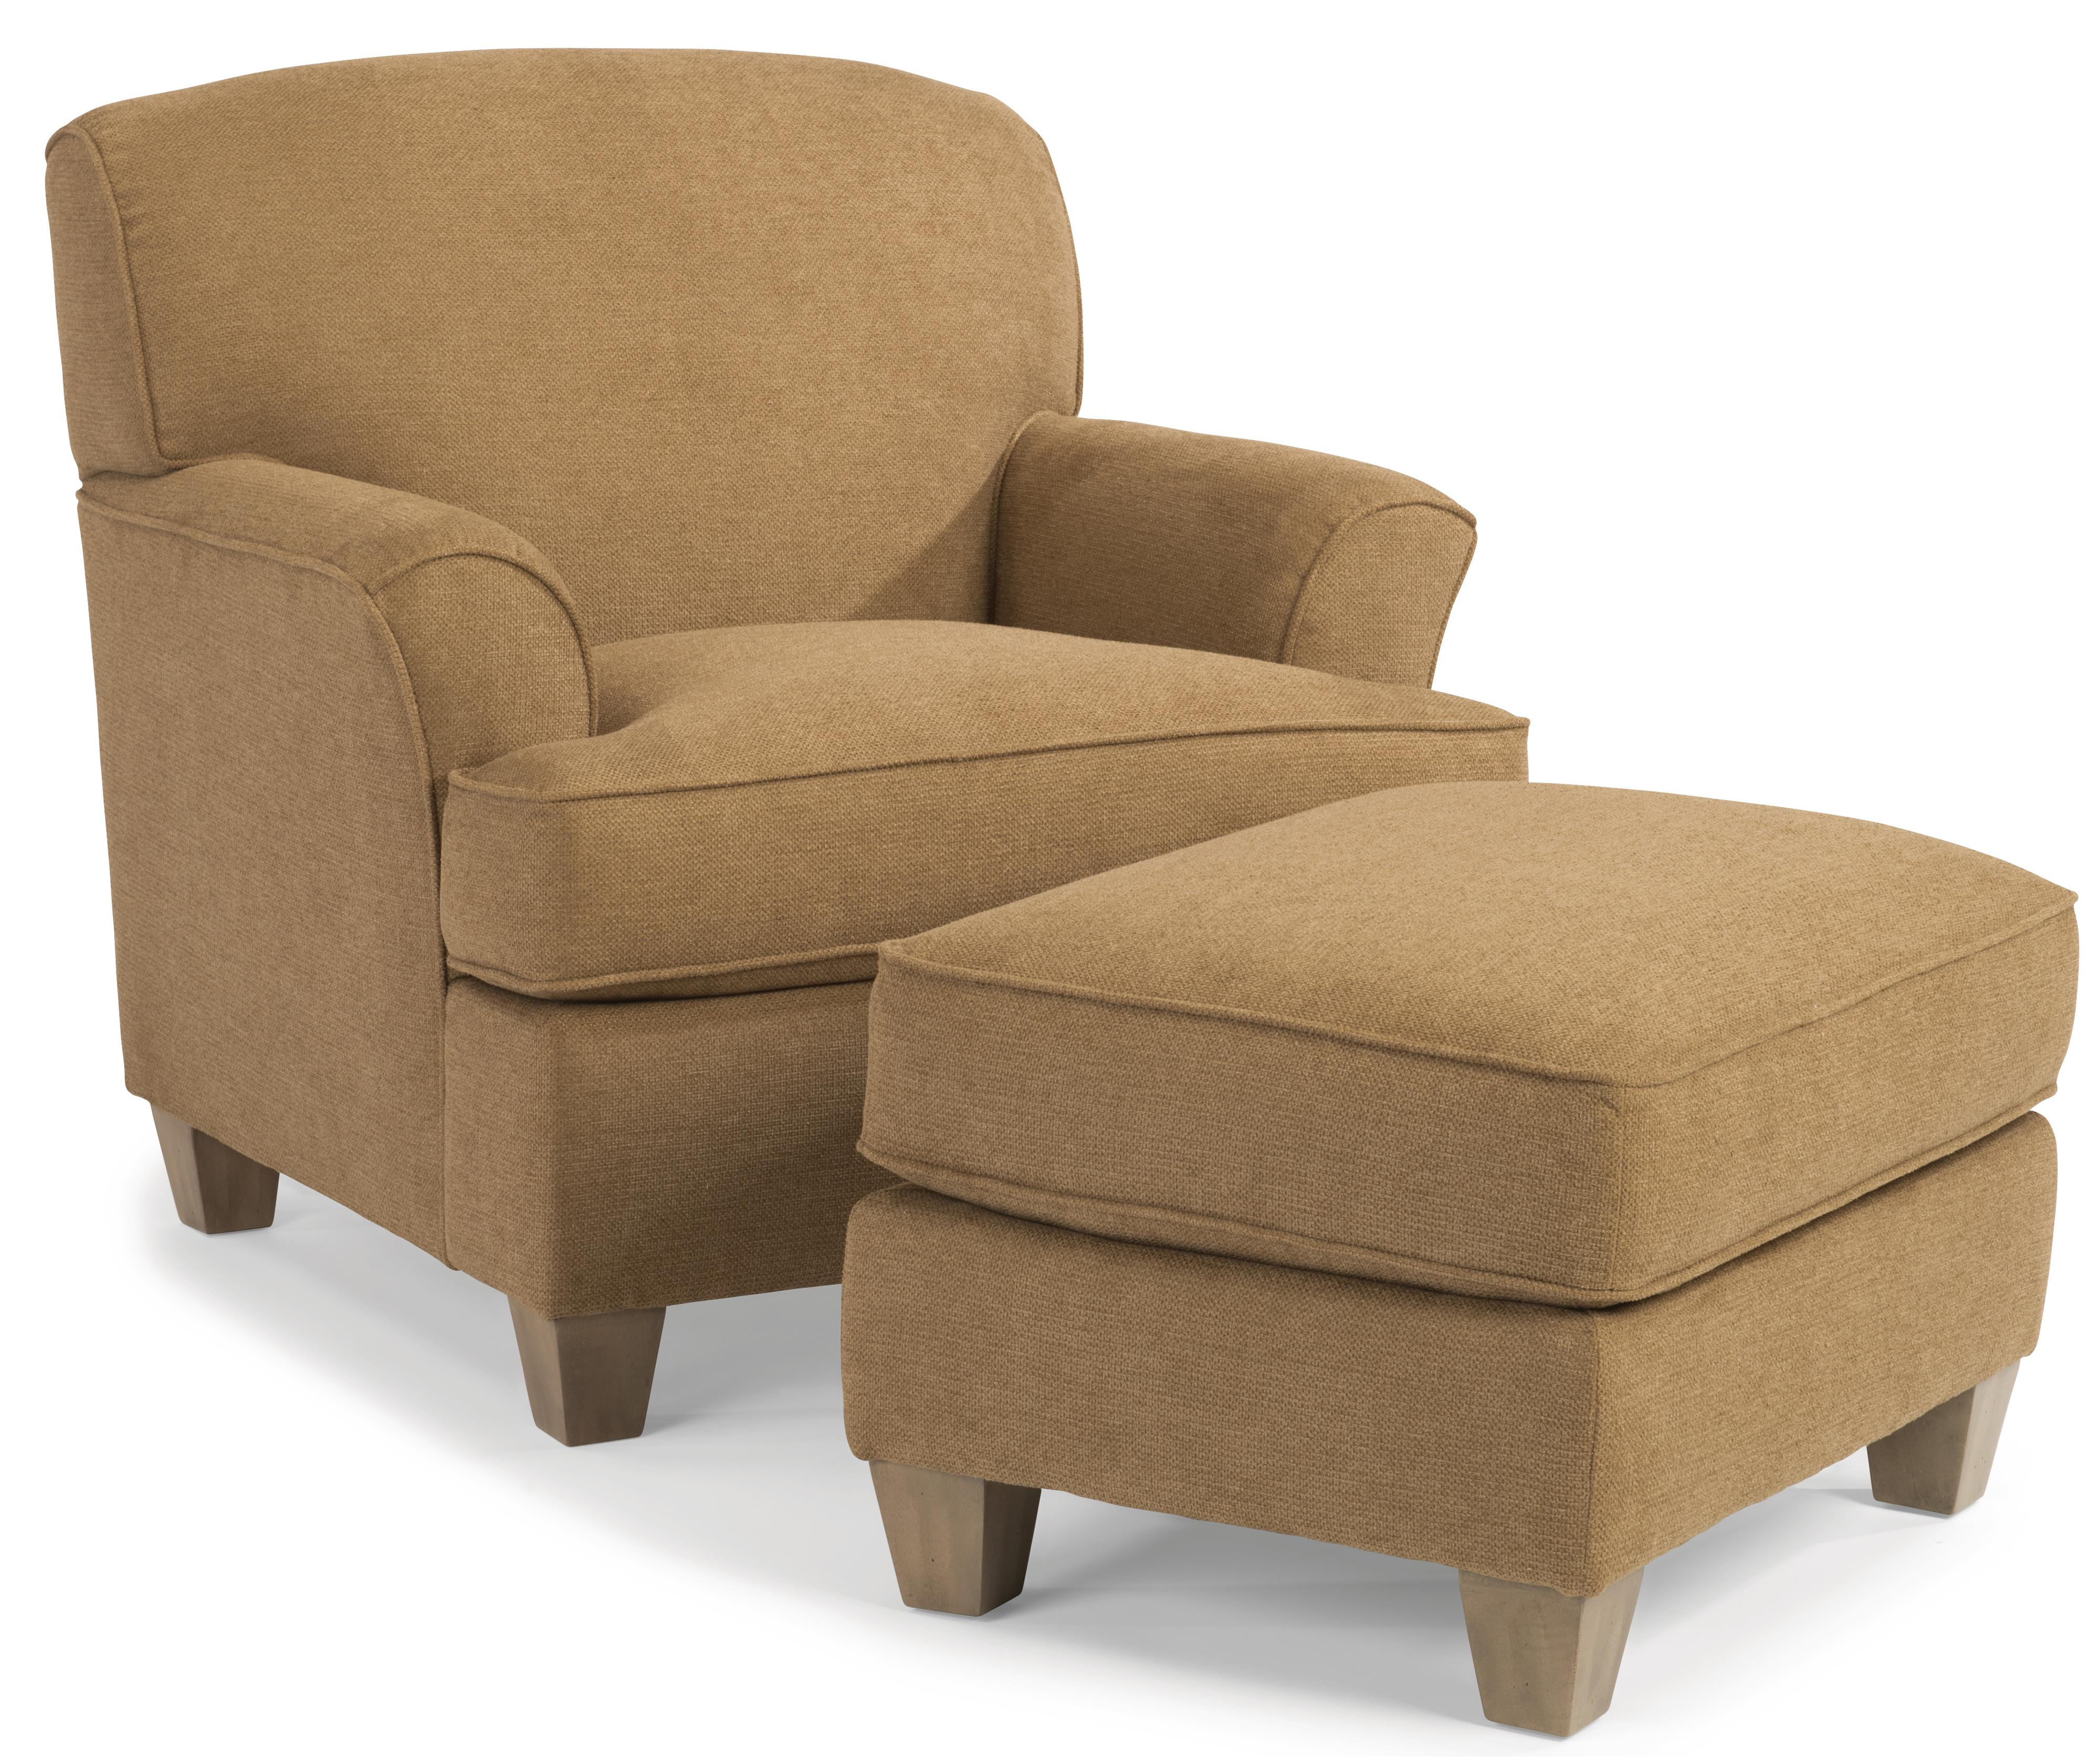 Flexsteel Atlantis Chair and Ottoman - Item Number: 5713-10-922-72+08-922-72